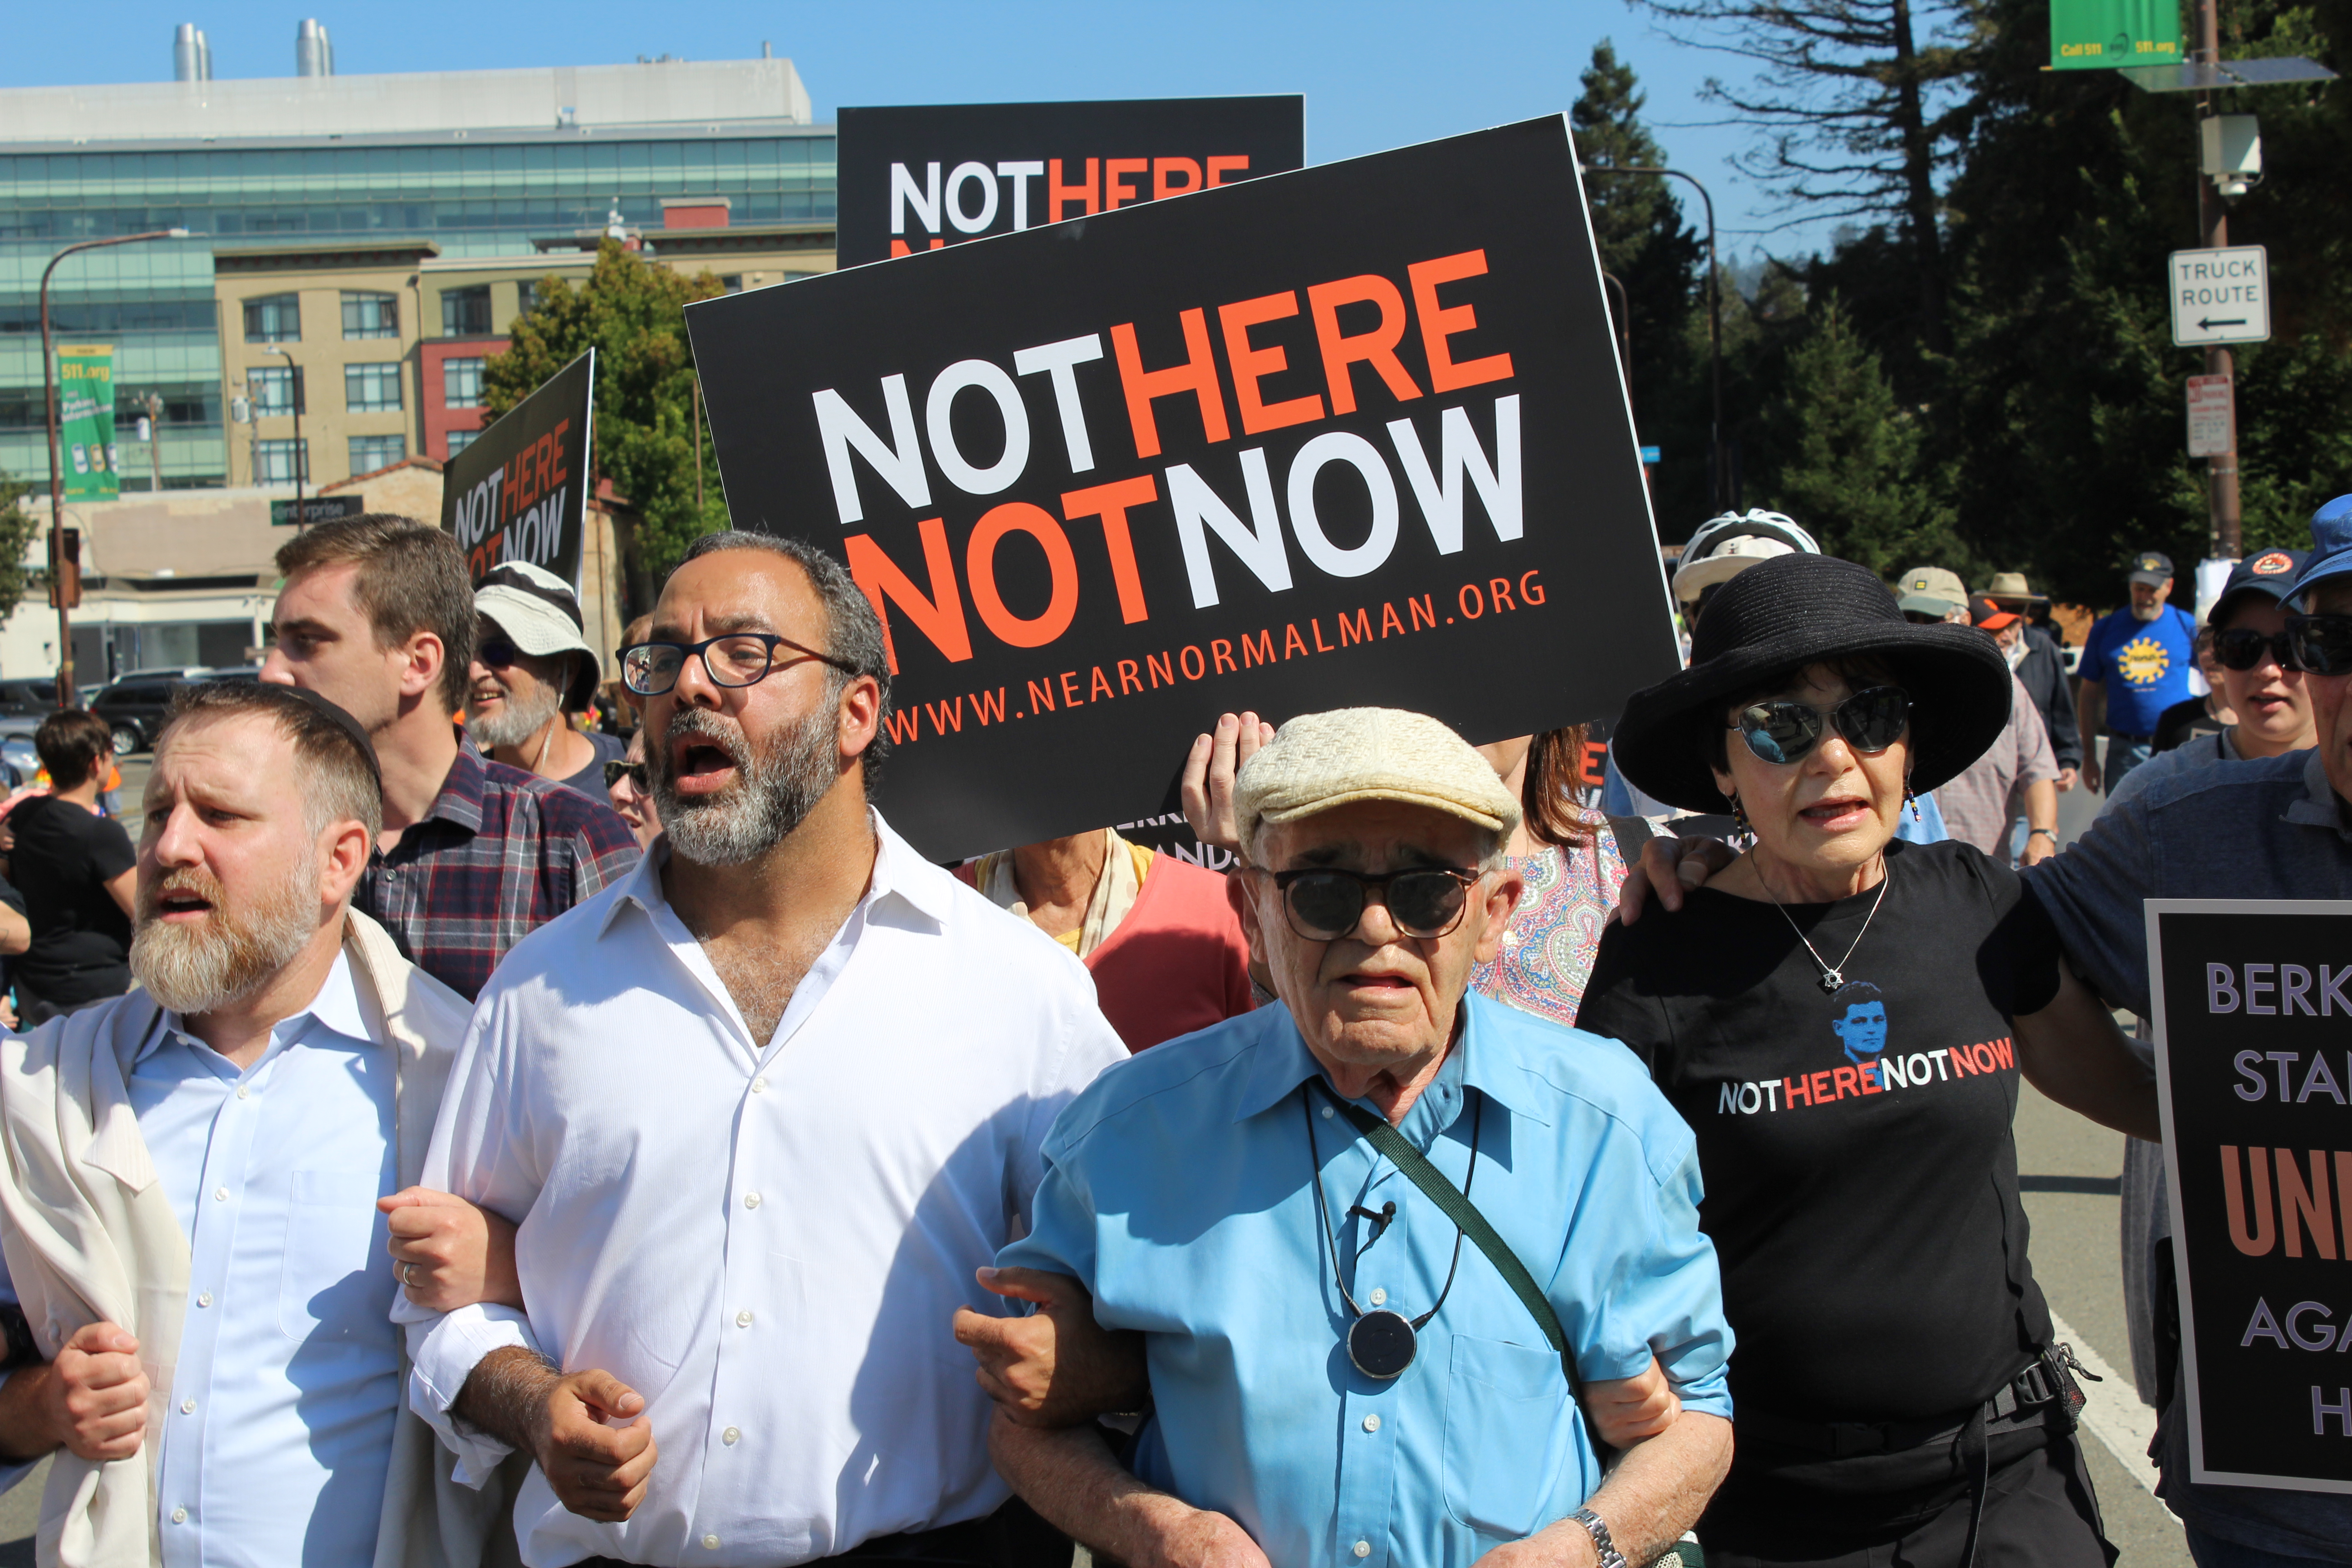 """Holocaust survivor Ben Stern (center, wearing blue shirt) leads about 200 marchers to the """"Bay Area Rally Against Hate"""" in Berkeley, accompanied by his daughter, Charlene Stern (on right), and Rabbis Menachem Creditor of Congregation Netivot Shalom (holding Ben's arm) and Yonatan Cohen of Congregation Beth Israel (far left), Aug. 27, 2017. (Photo/Rob Gloster)"""